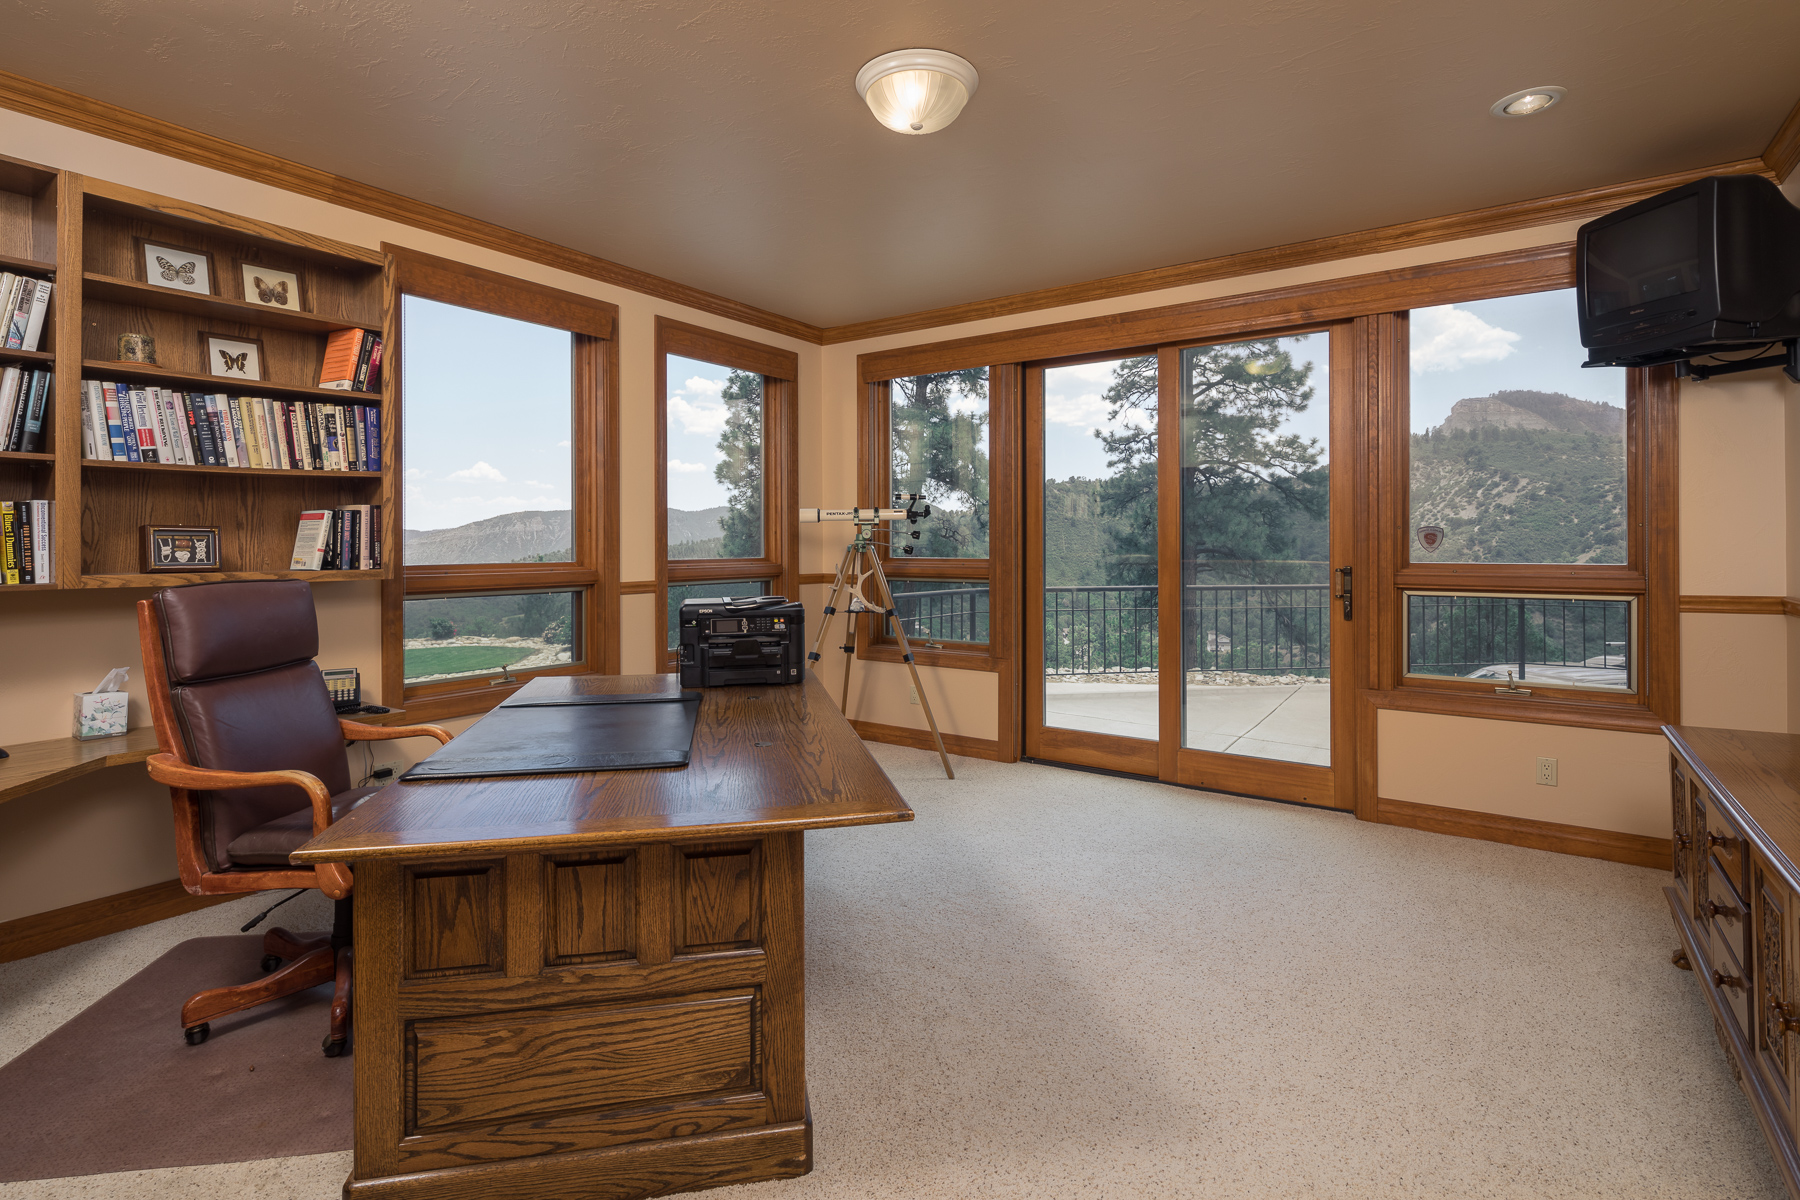 Additional photo for property listing at 40 Perins Vista 40 Perins Vista Drive Durango, Colorado 81301 United States